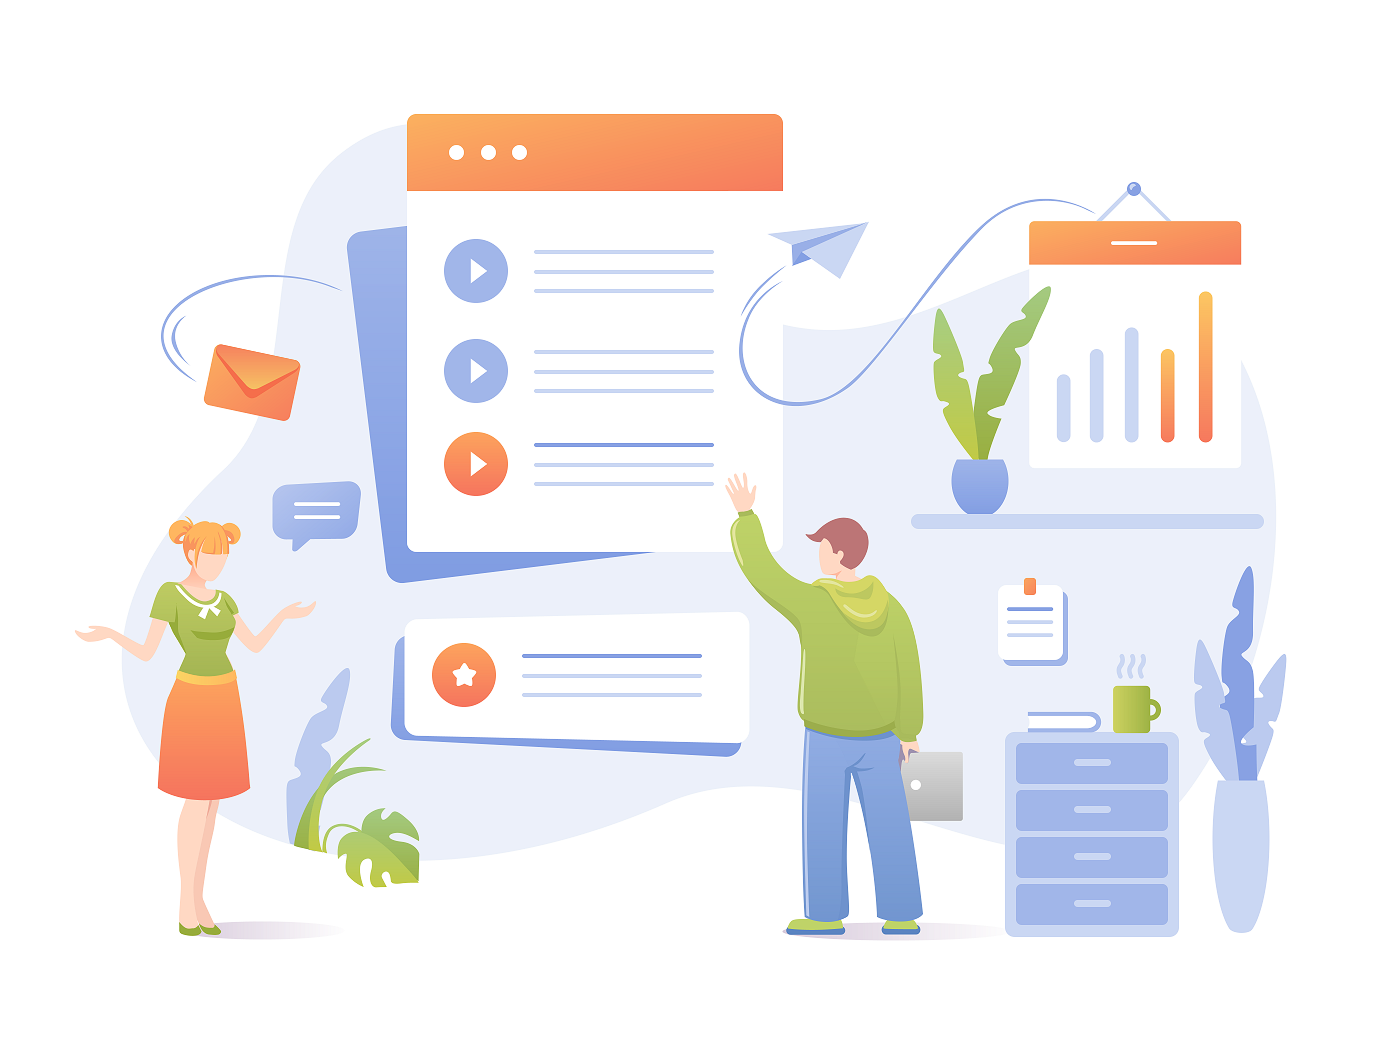 teamwork office documents collaboration people vector colors characters face clothes avatar woman icon ui paper design sketch emotion drawing character illustration